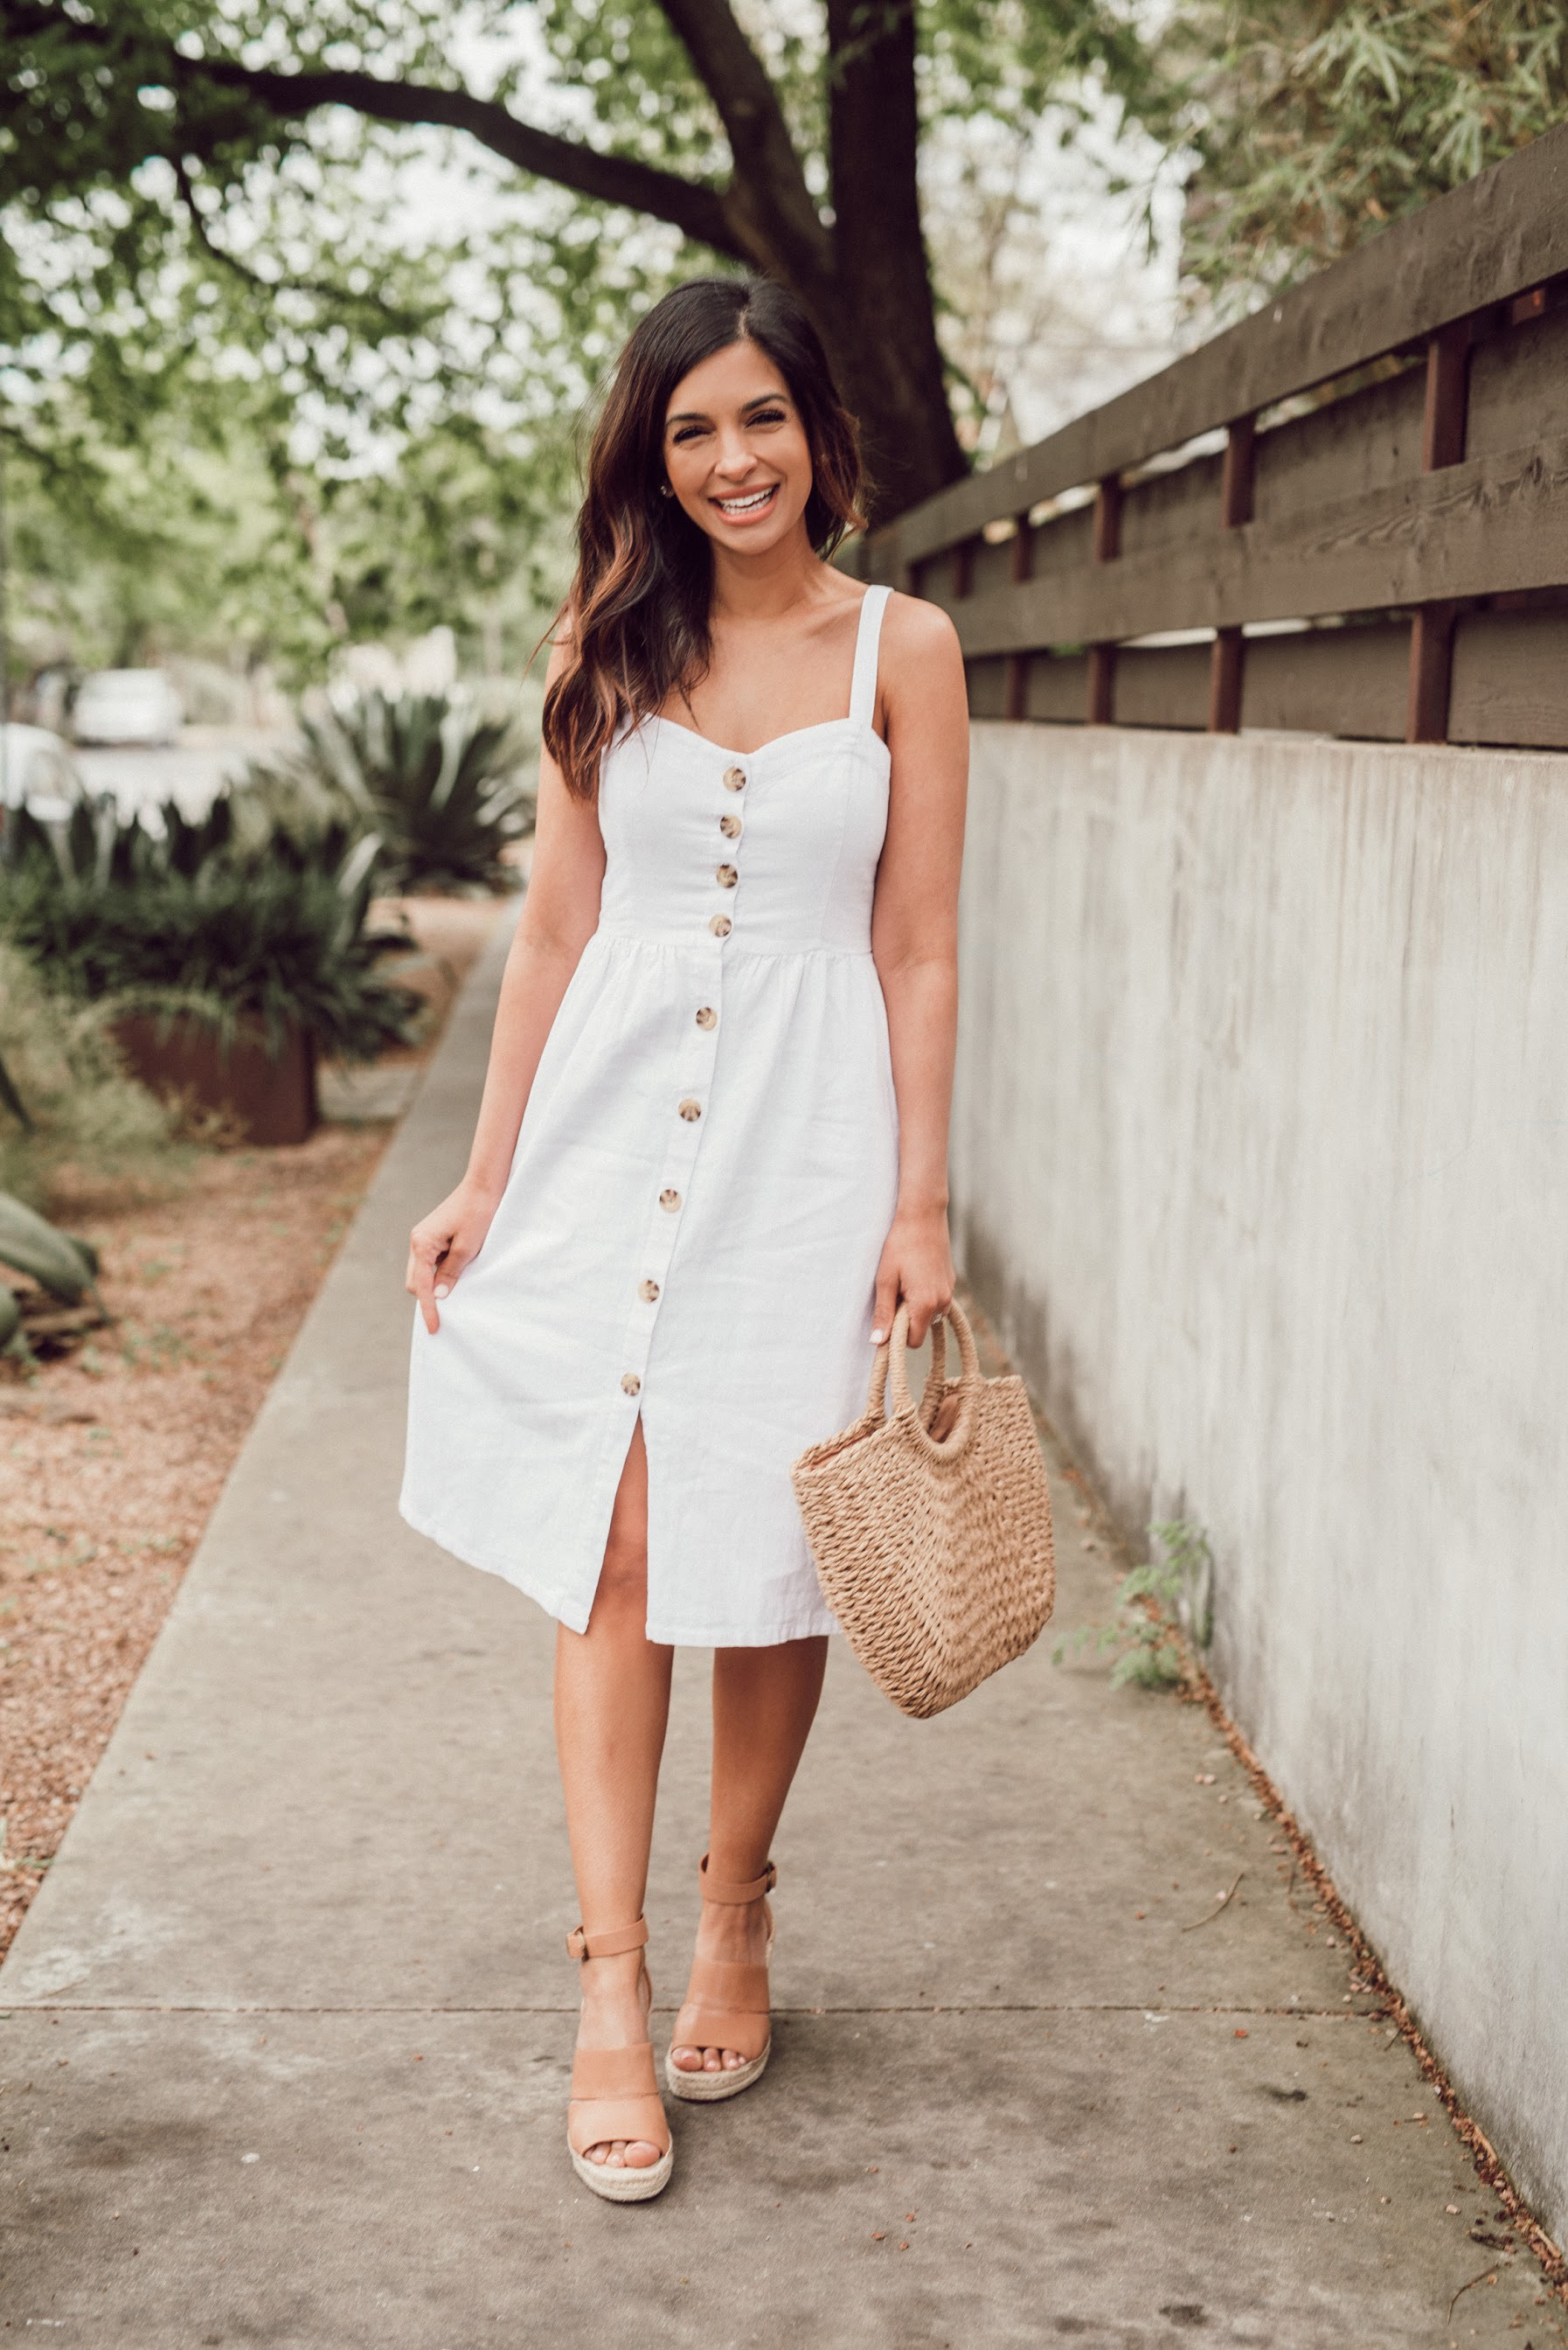 White summer dress.JPG